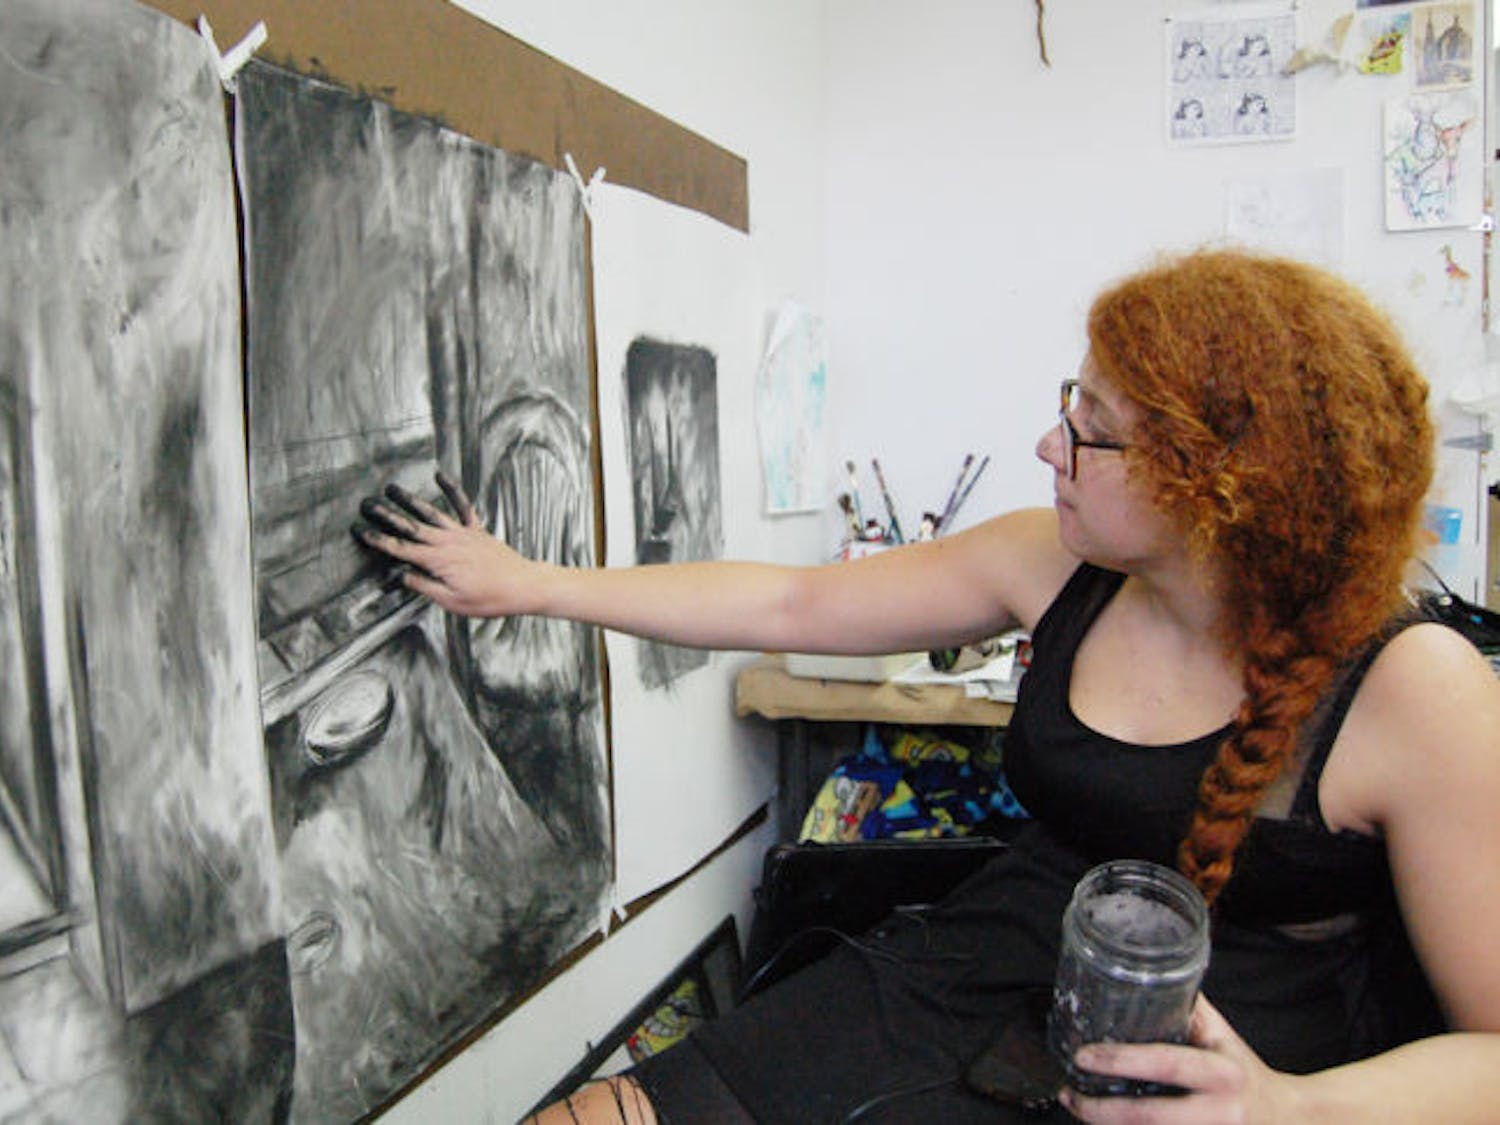 Dounia Bendris, a 21-year-old UF drawing senior, doesn't like hard lines in her work, so she uses her fingers to smear her charcoal drawings. With black-stained hands, her fingerprints create a shadow and light effect. She dips her fingers into a water jug to seal the charcoal when she's satisfied with an area.